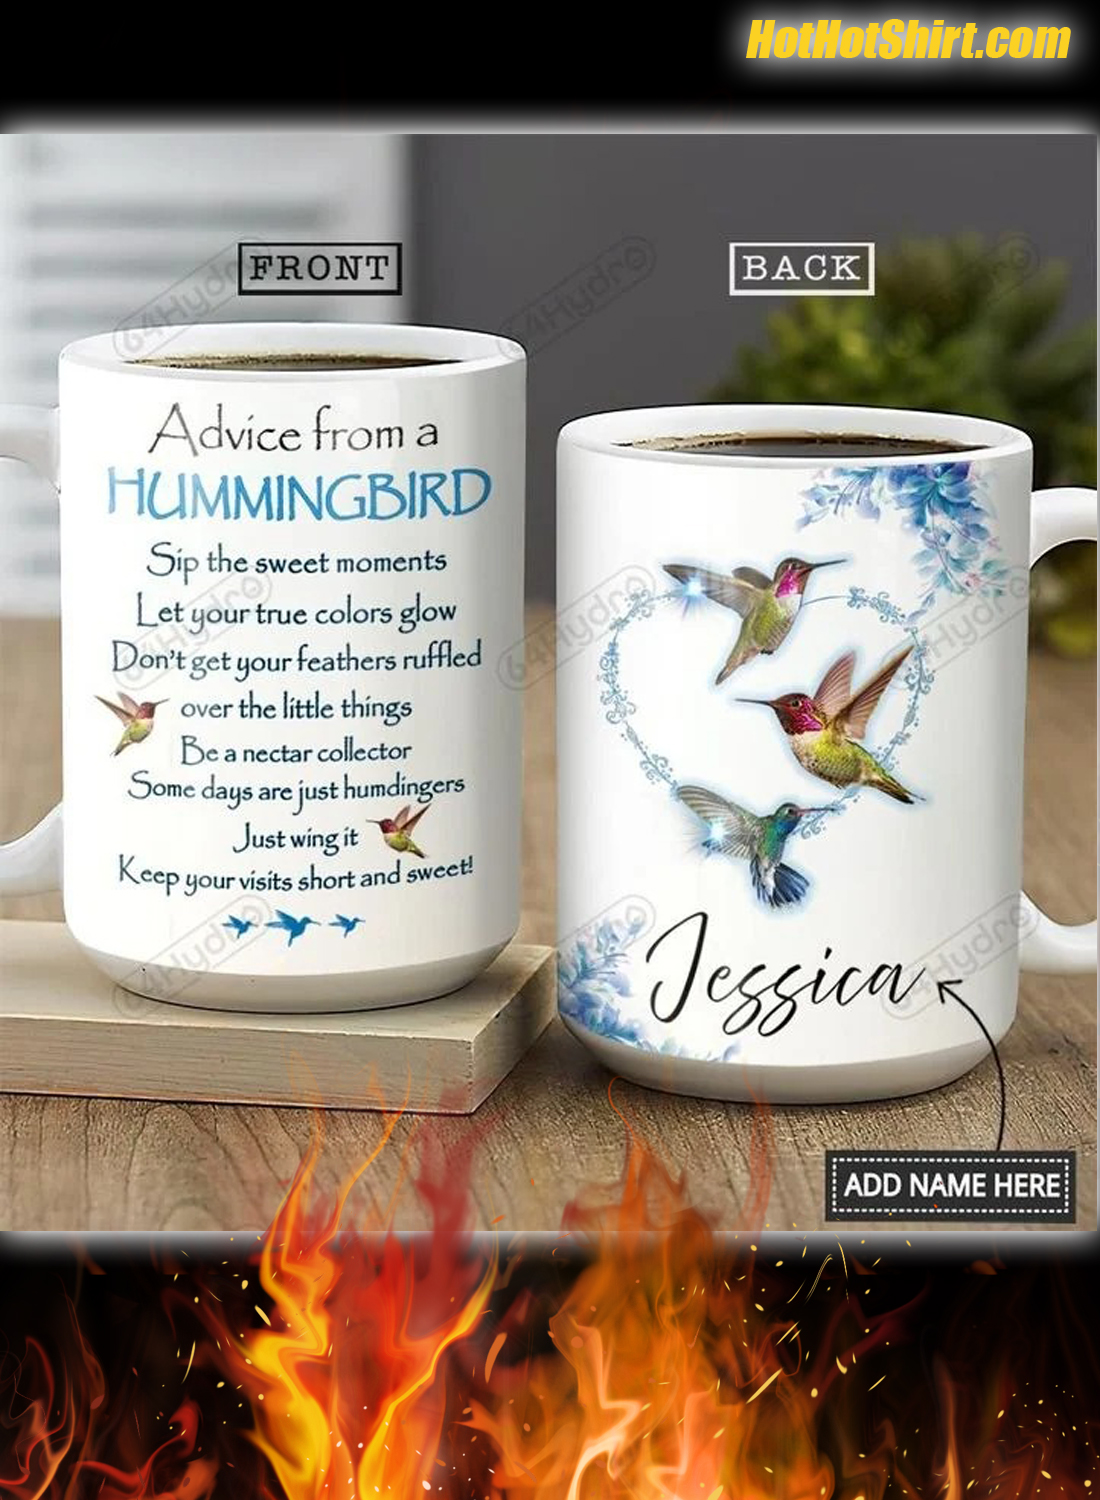 Personalized Name Advice From A Hummingbird Mug 1